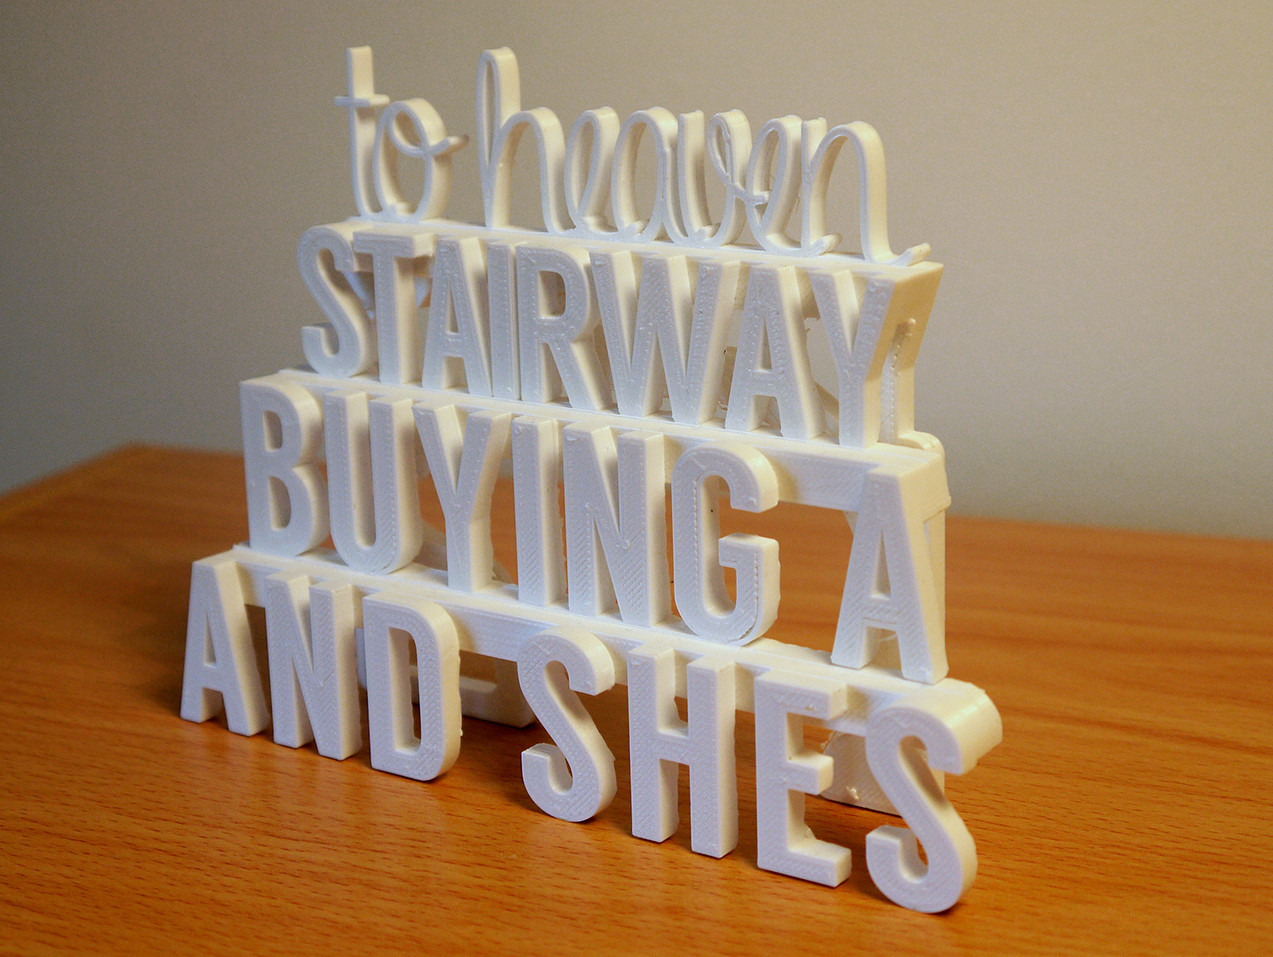 P1060424.JPG Download STL file Stairway to Heaven - 3D Printed Art (Led Zeppelin) • 3D printer object, ThePursuit